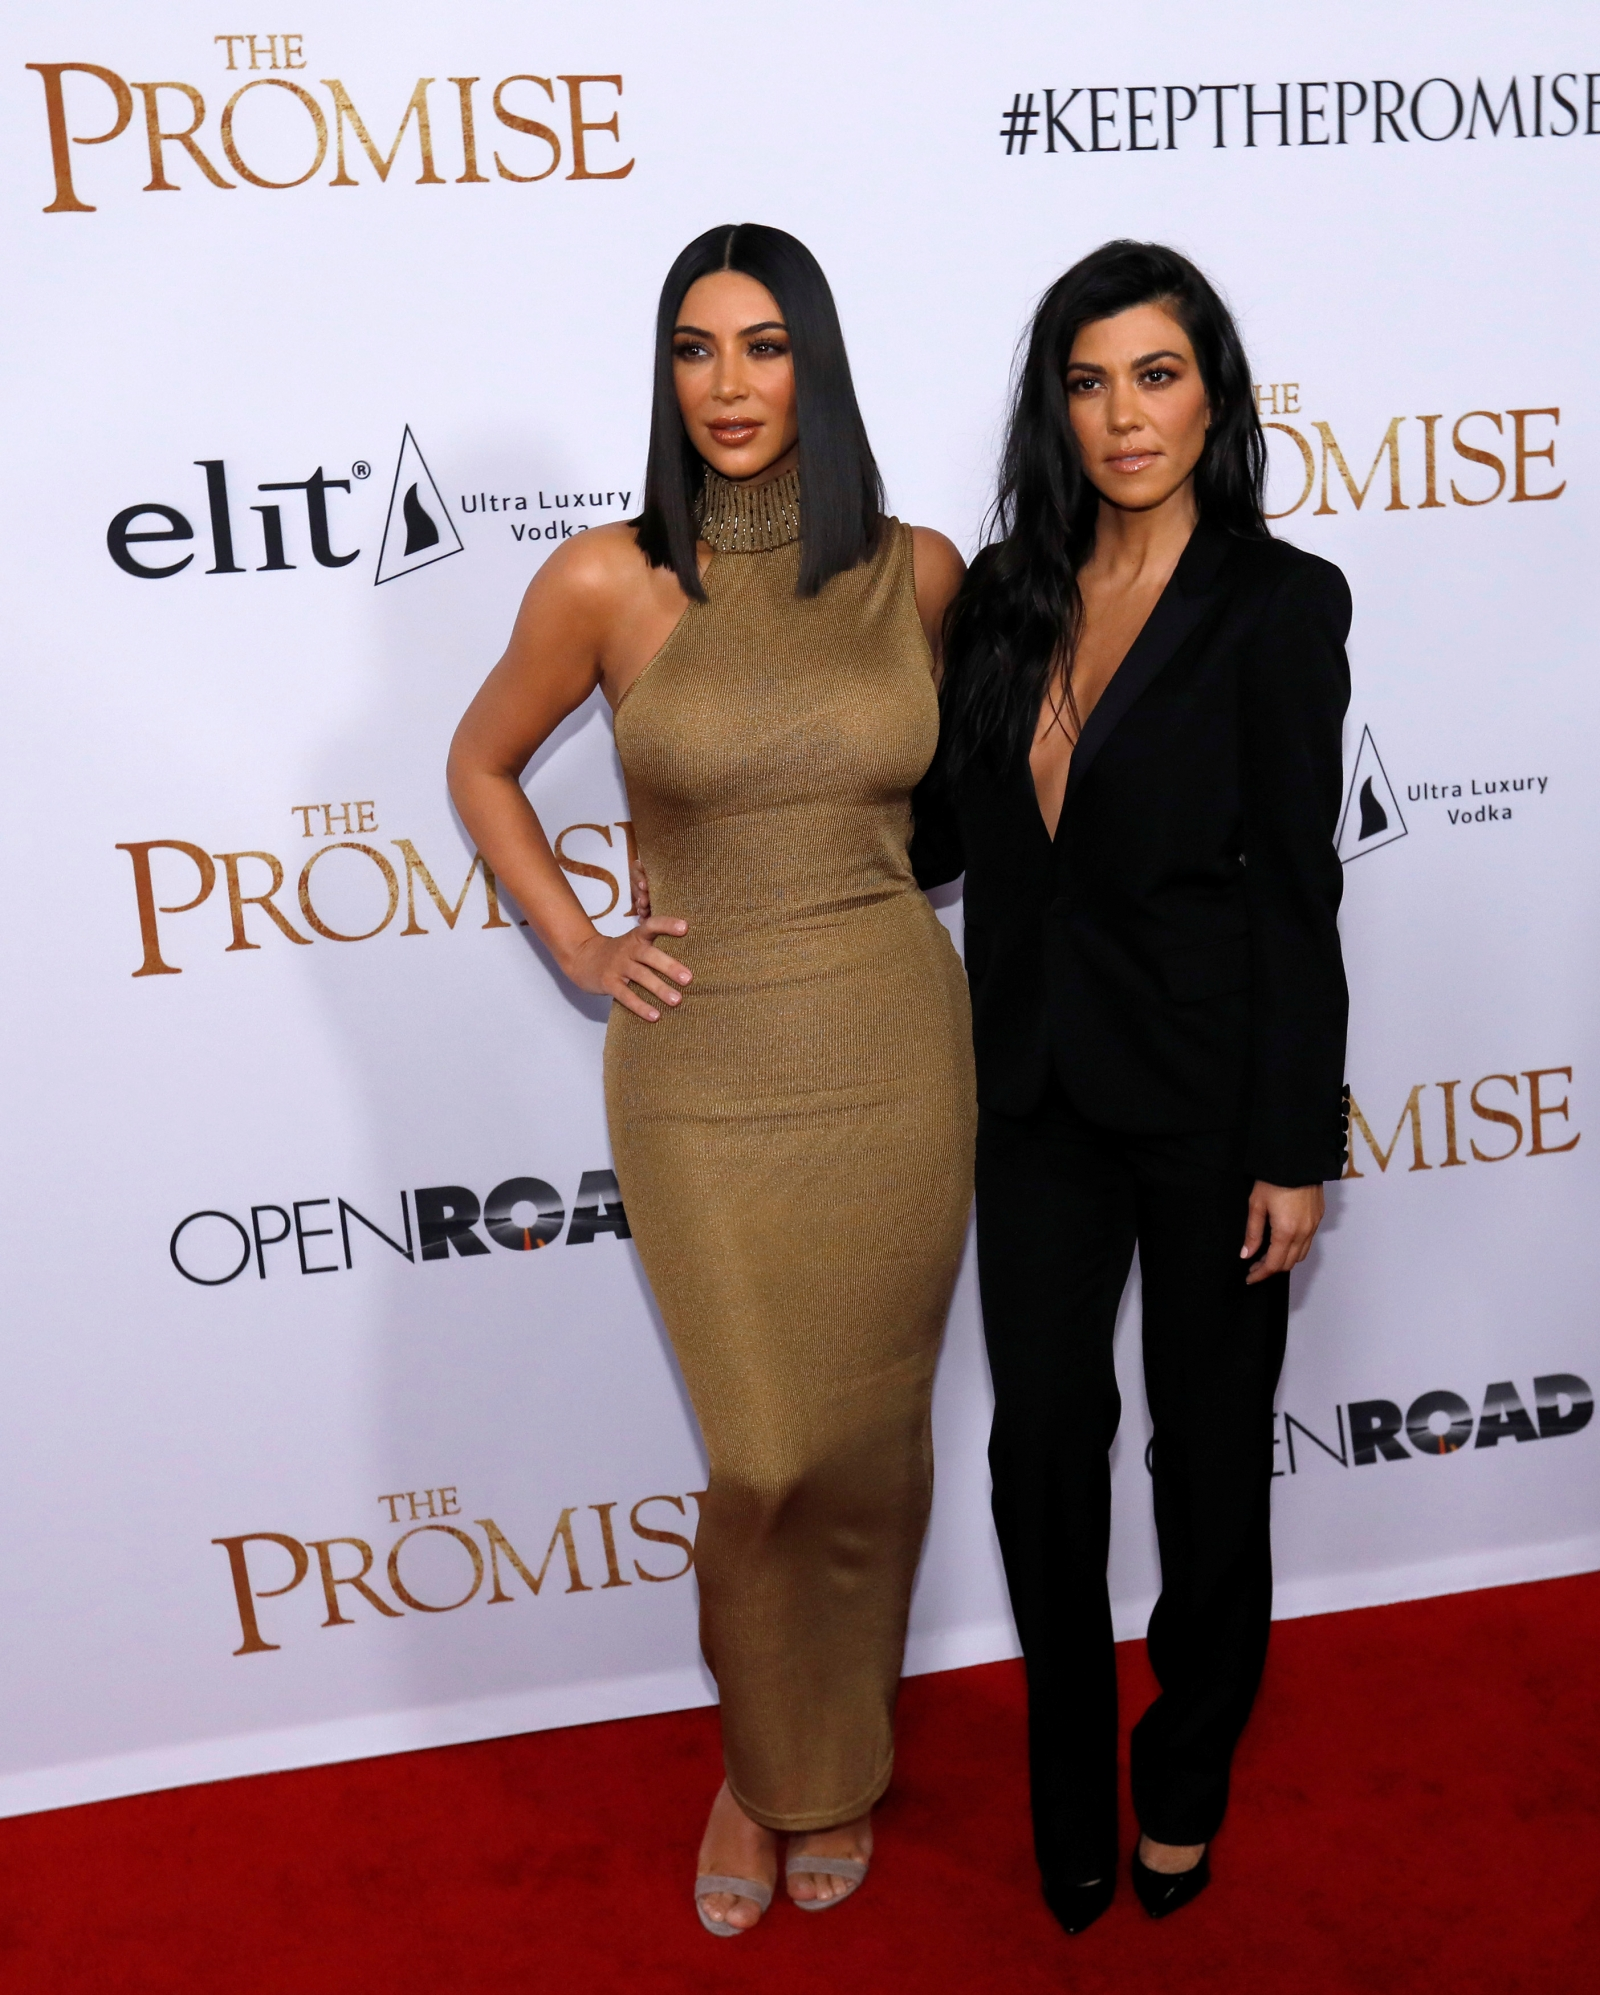 scott dating kourtney sister Kourtney kardashian has moved on from scott disick with a new man - younes bendjima the model and the reality tv star are looking loved-up.